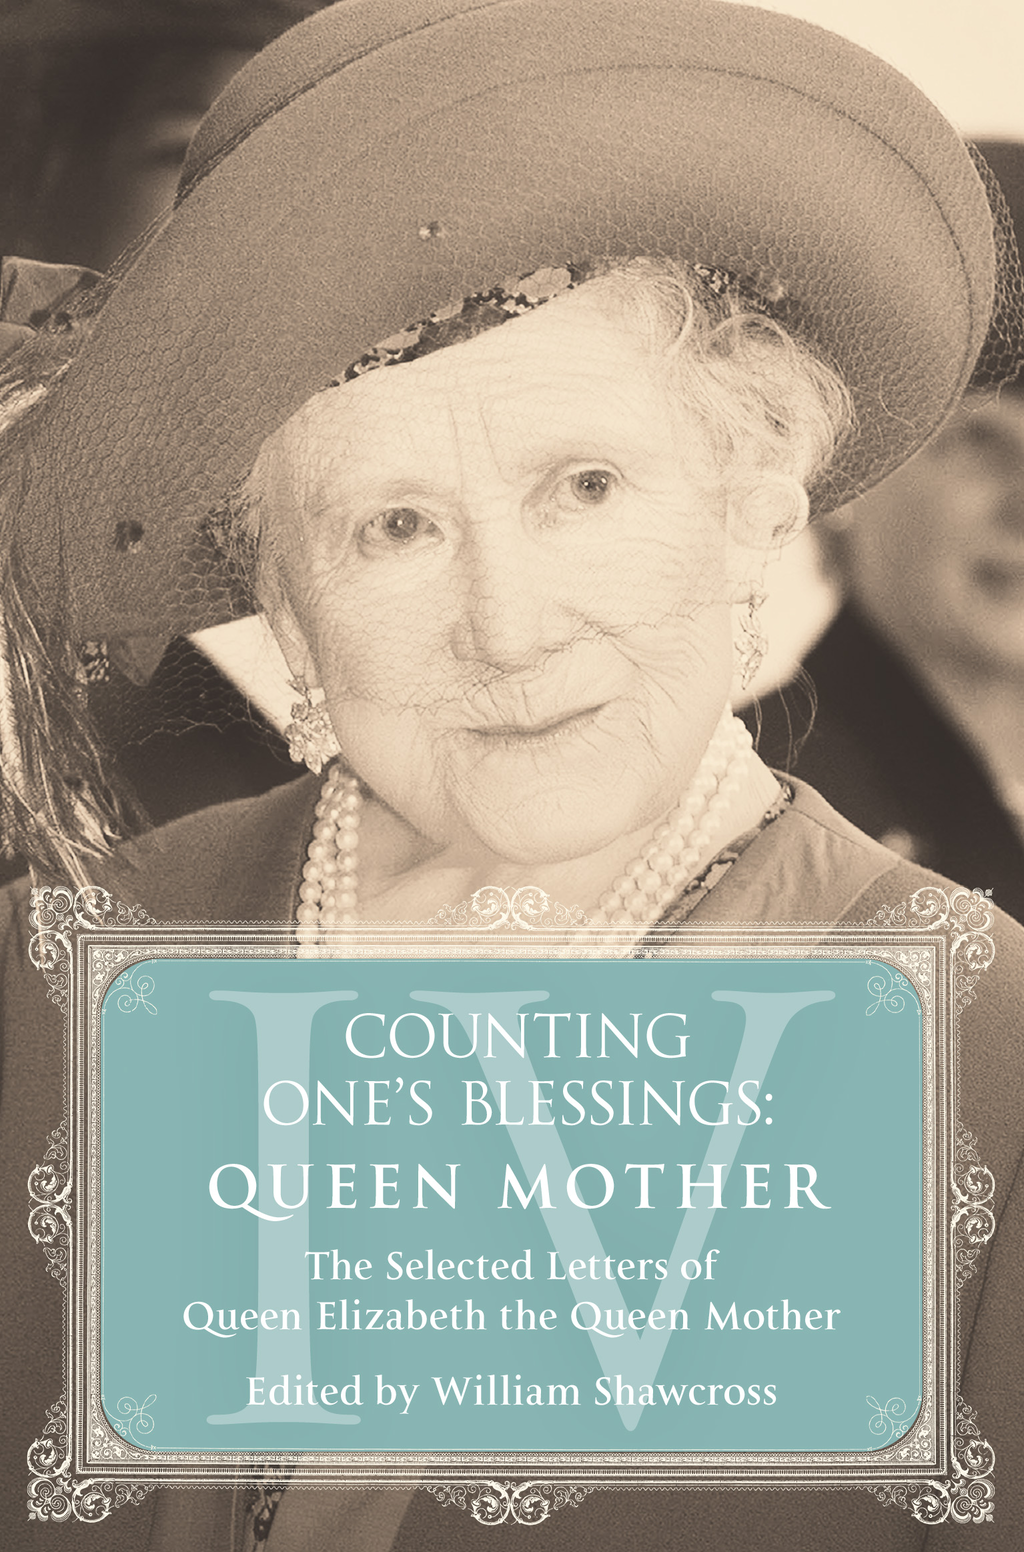 Queen Mother The Selected Letters of Queen Elizabeth the Queen Mother: Part 4